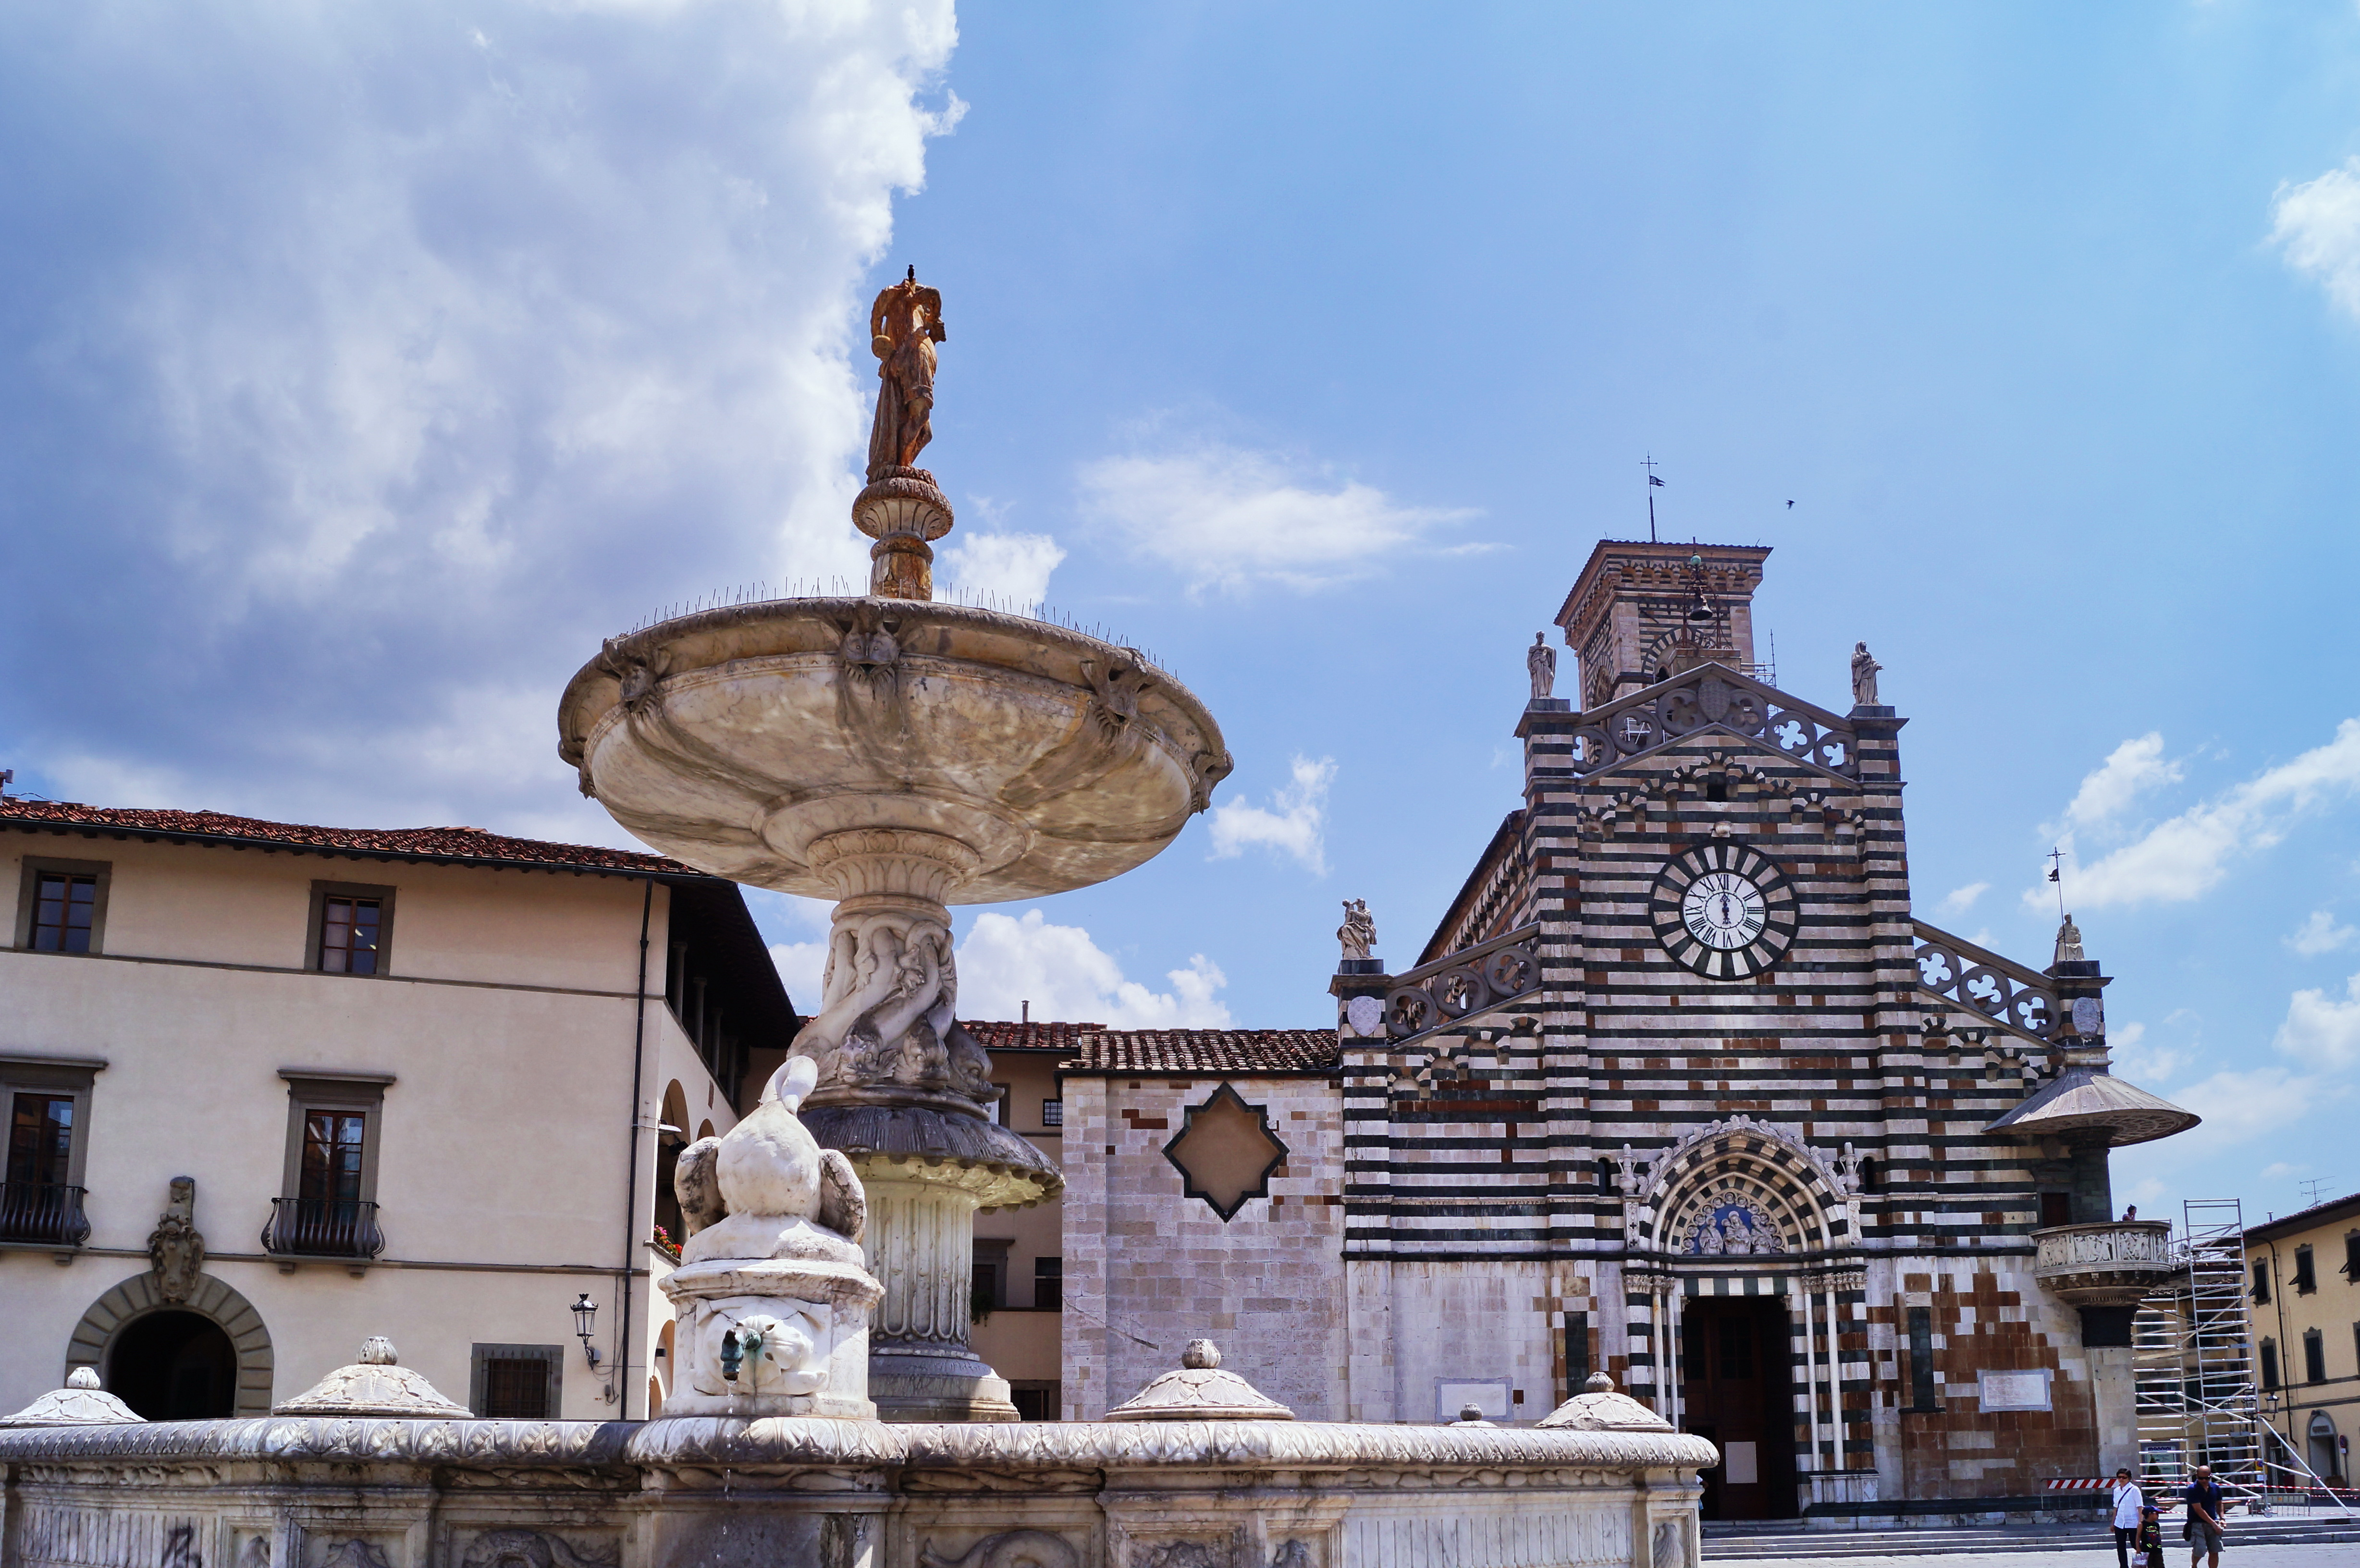 piazza del duomo florence history italy - photo#49